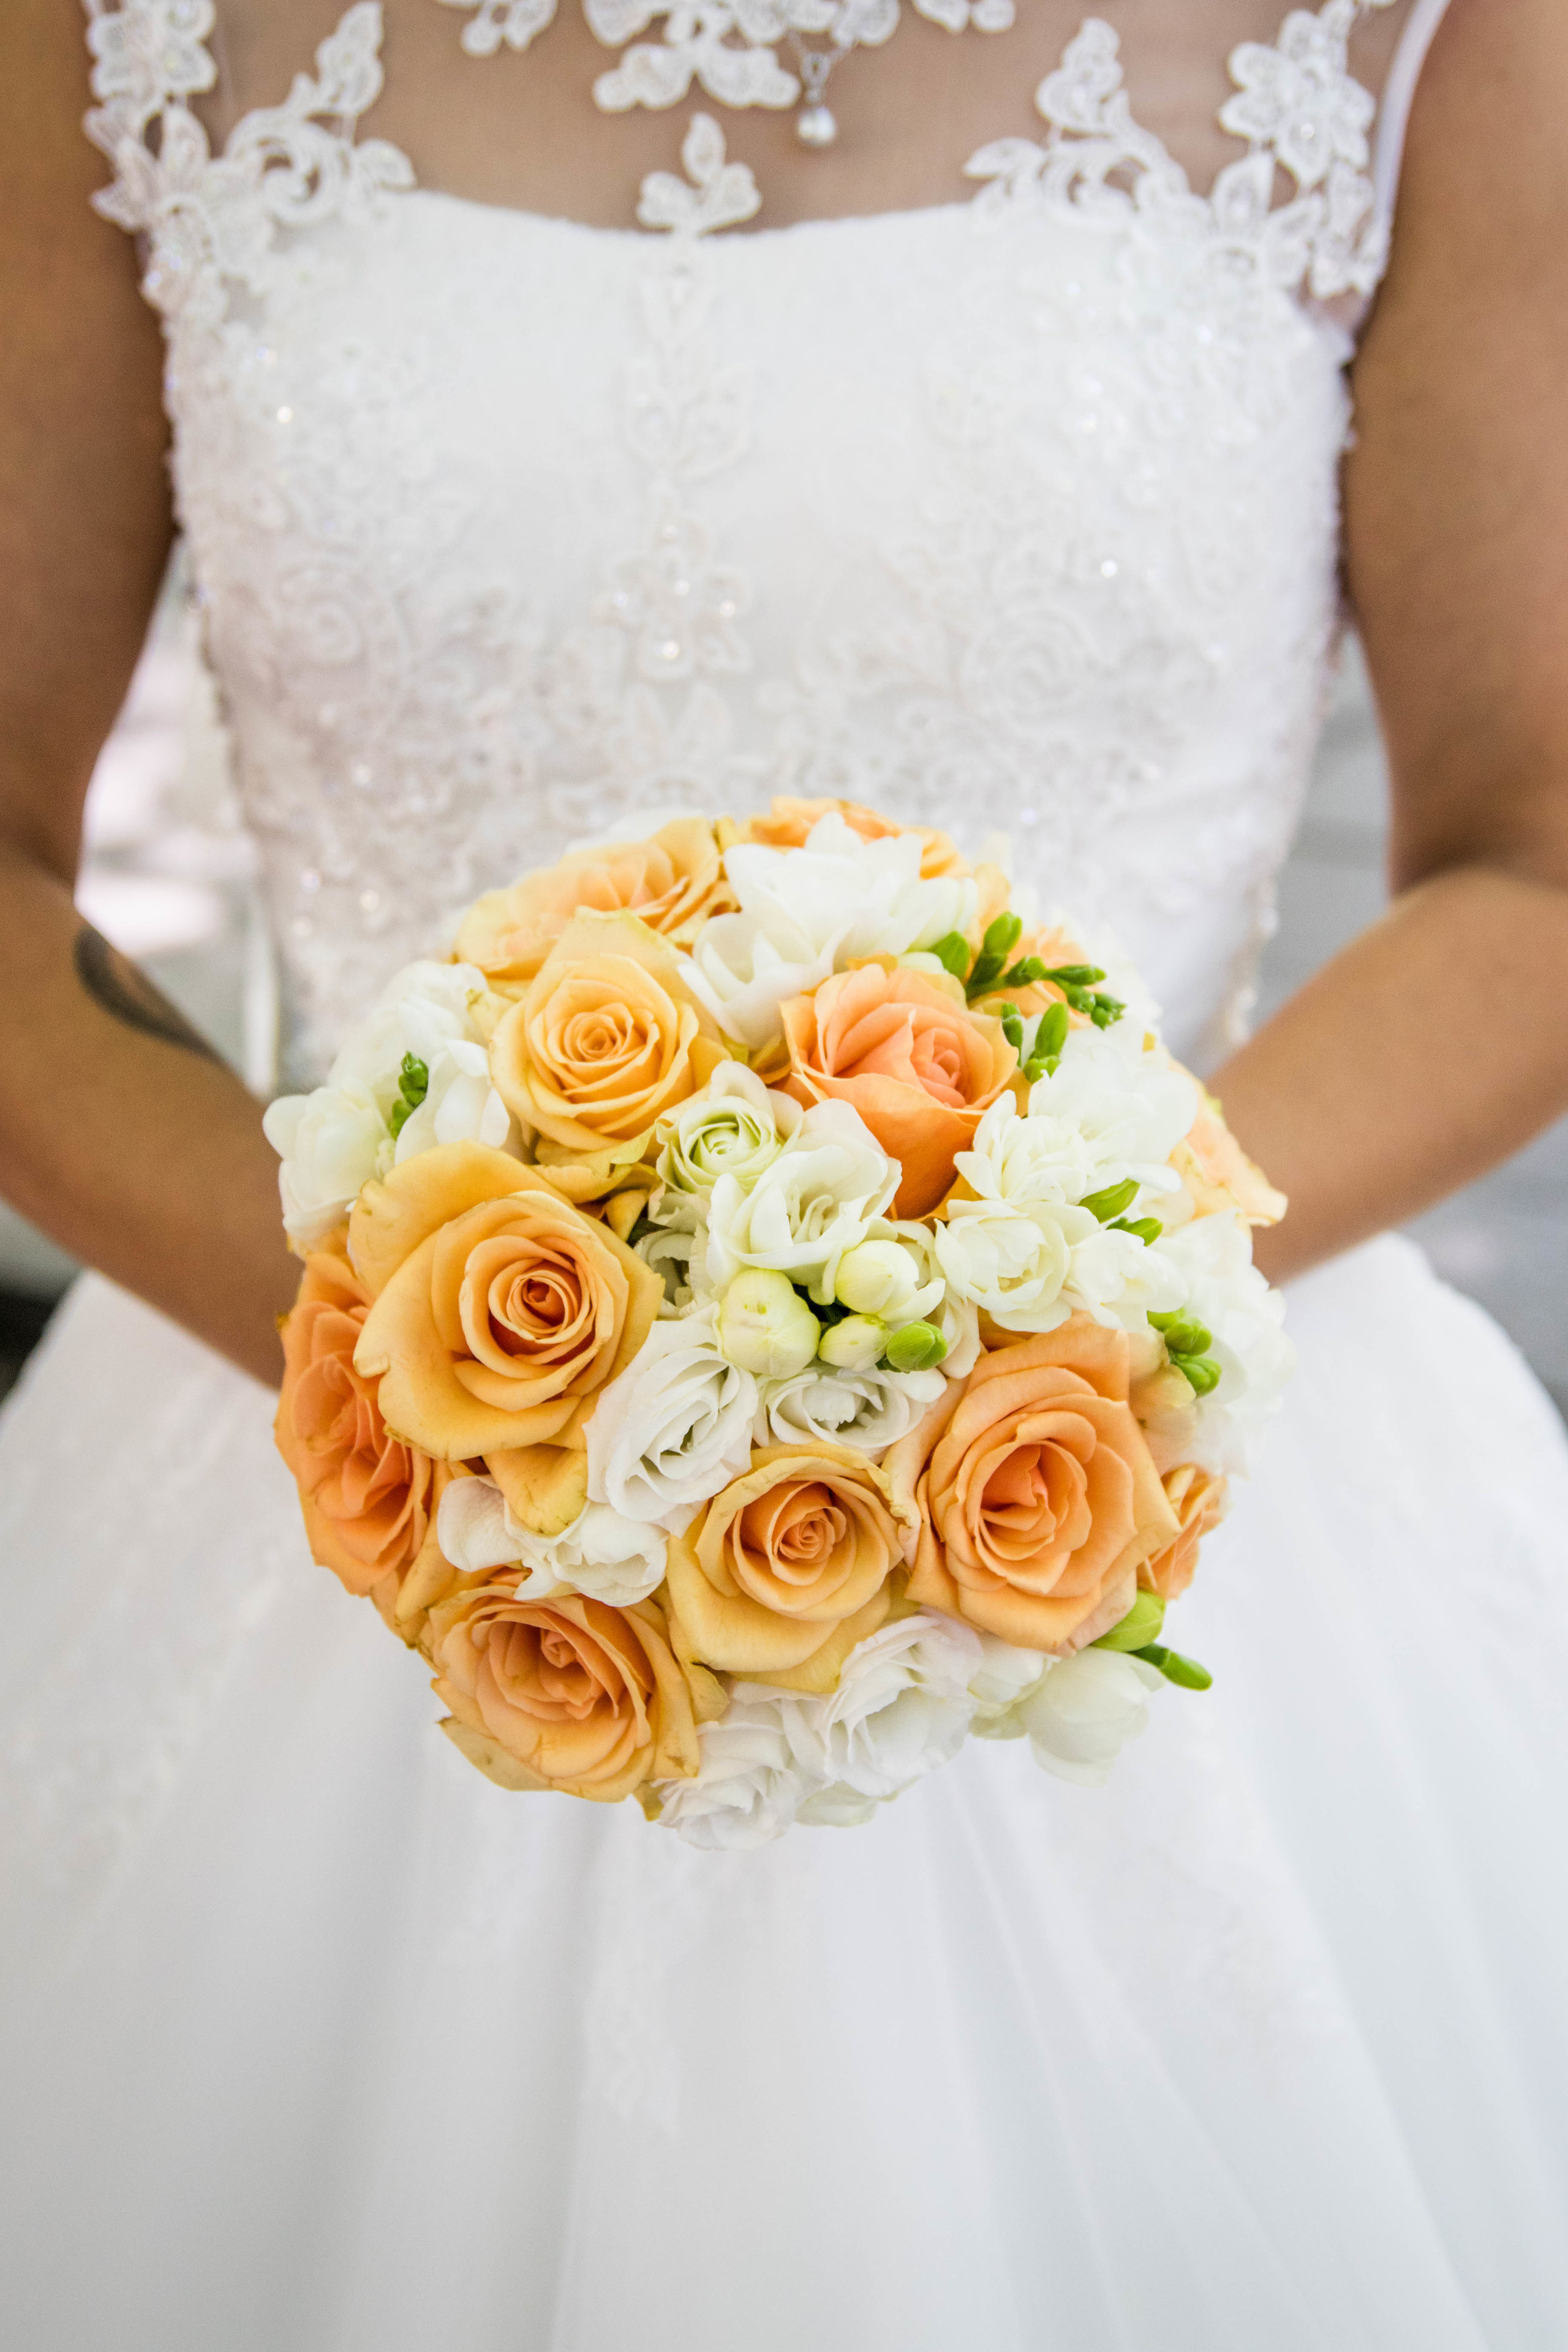 Bloom blossom bouquet bridal bride